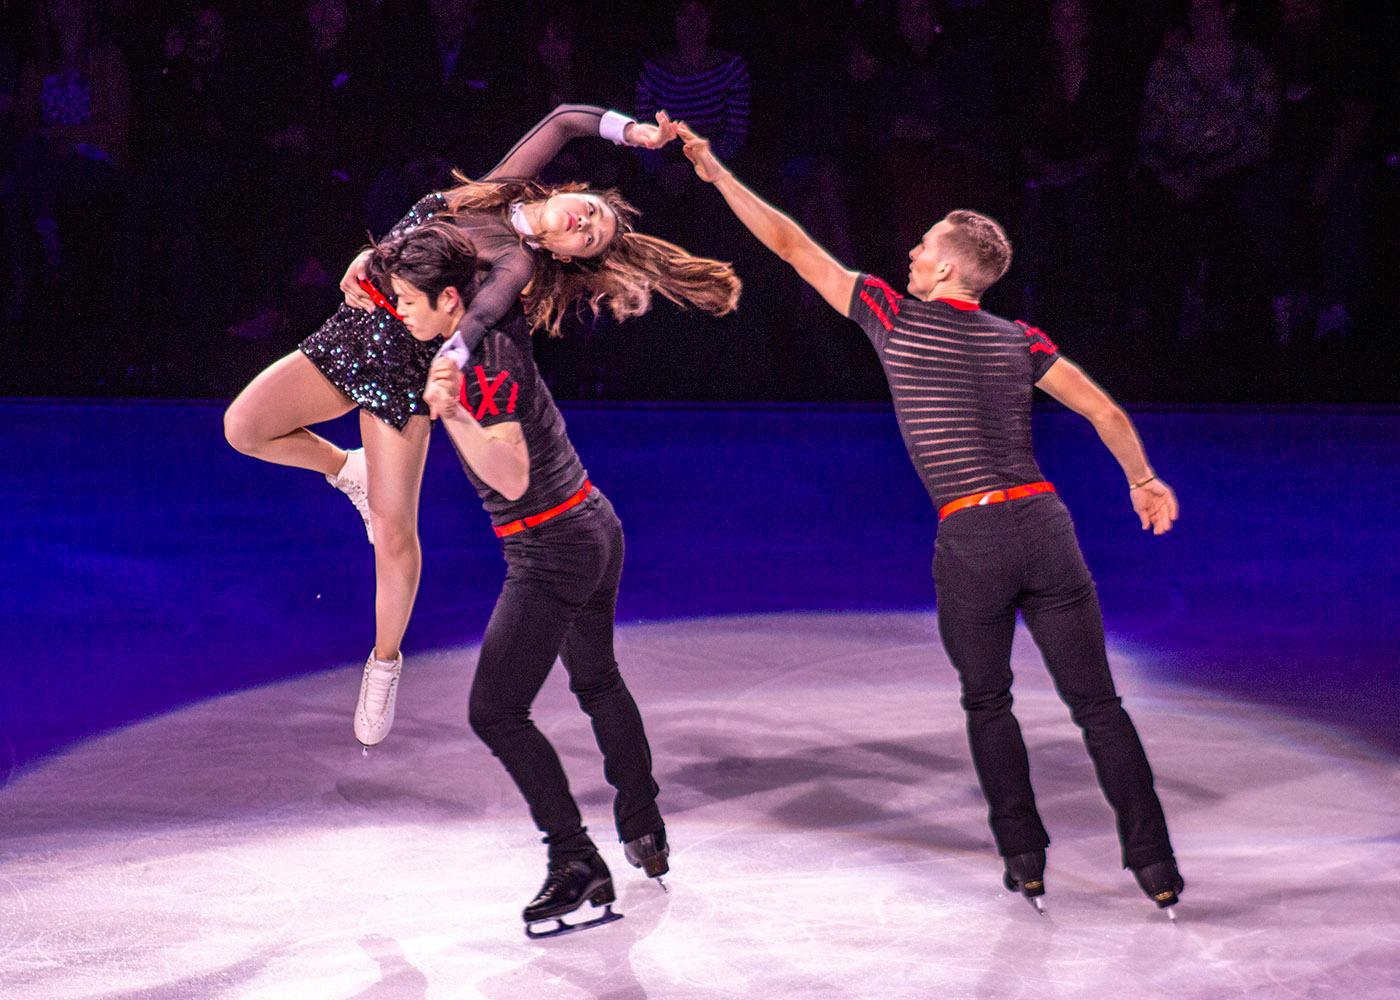 Current and former Olympians and other top figure skaters performed at the Moda Center Sunday, May 20, 2018 as part of the Stars on Ice U.S. tour. Many performers including Nathan Chen, Maia and Alex Shibutani, Adam Rippon, and Mirai Nagasu recently competed at the 2018 Winter Olympics in Pyeongchang, South Korea. Other performers included Meryl Davis and Charlie White, Ashley Wagner, Jason Brown, Bradie Tennel, Madison Hubbell and Zachary Donohue, Karen Chen and Vincent Zhou. Photo by A